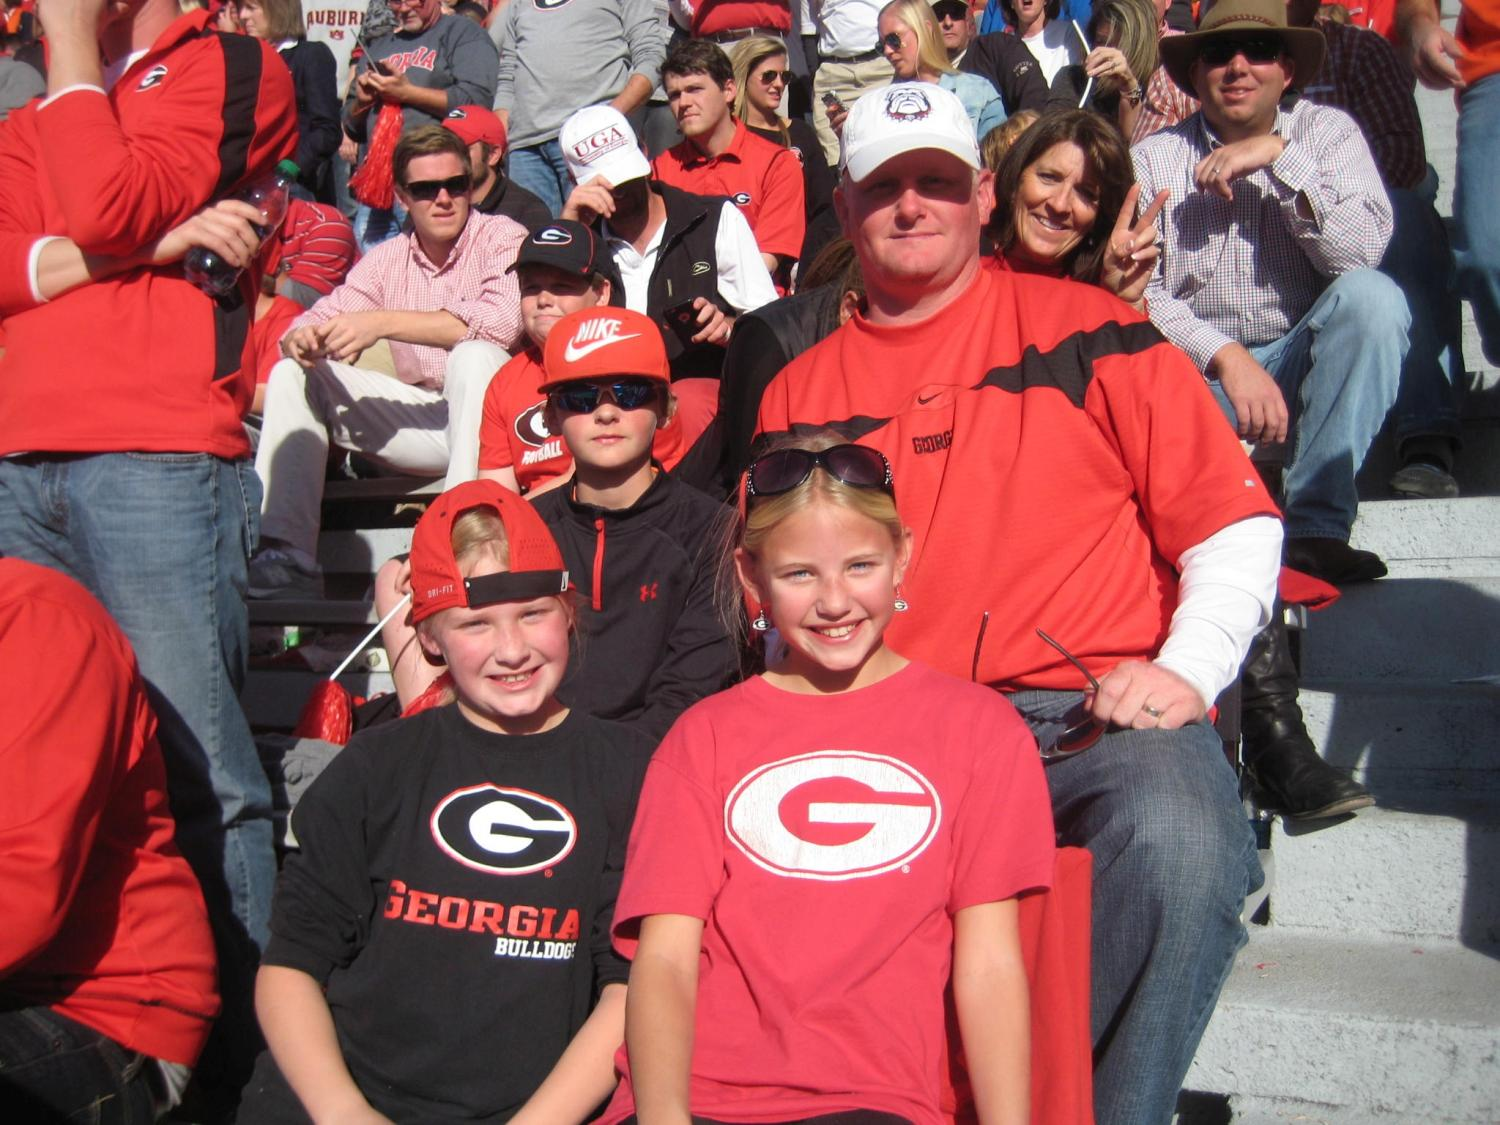 Bailey, Brinley, Grady and Nathan Bartlett Georgia vs. Auburn 14-Nov-2015 (Photo by Vance Leavy)